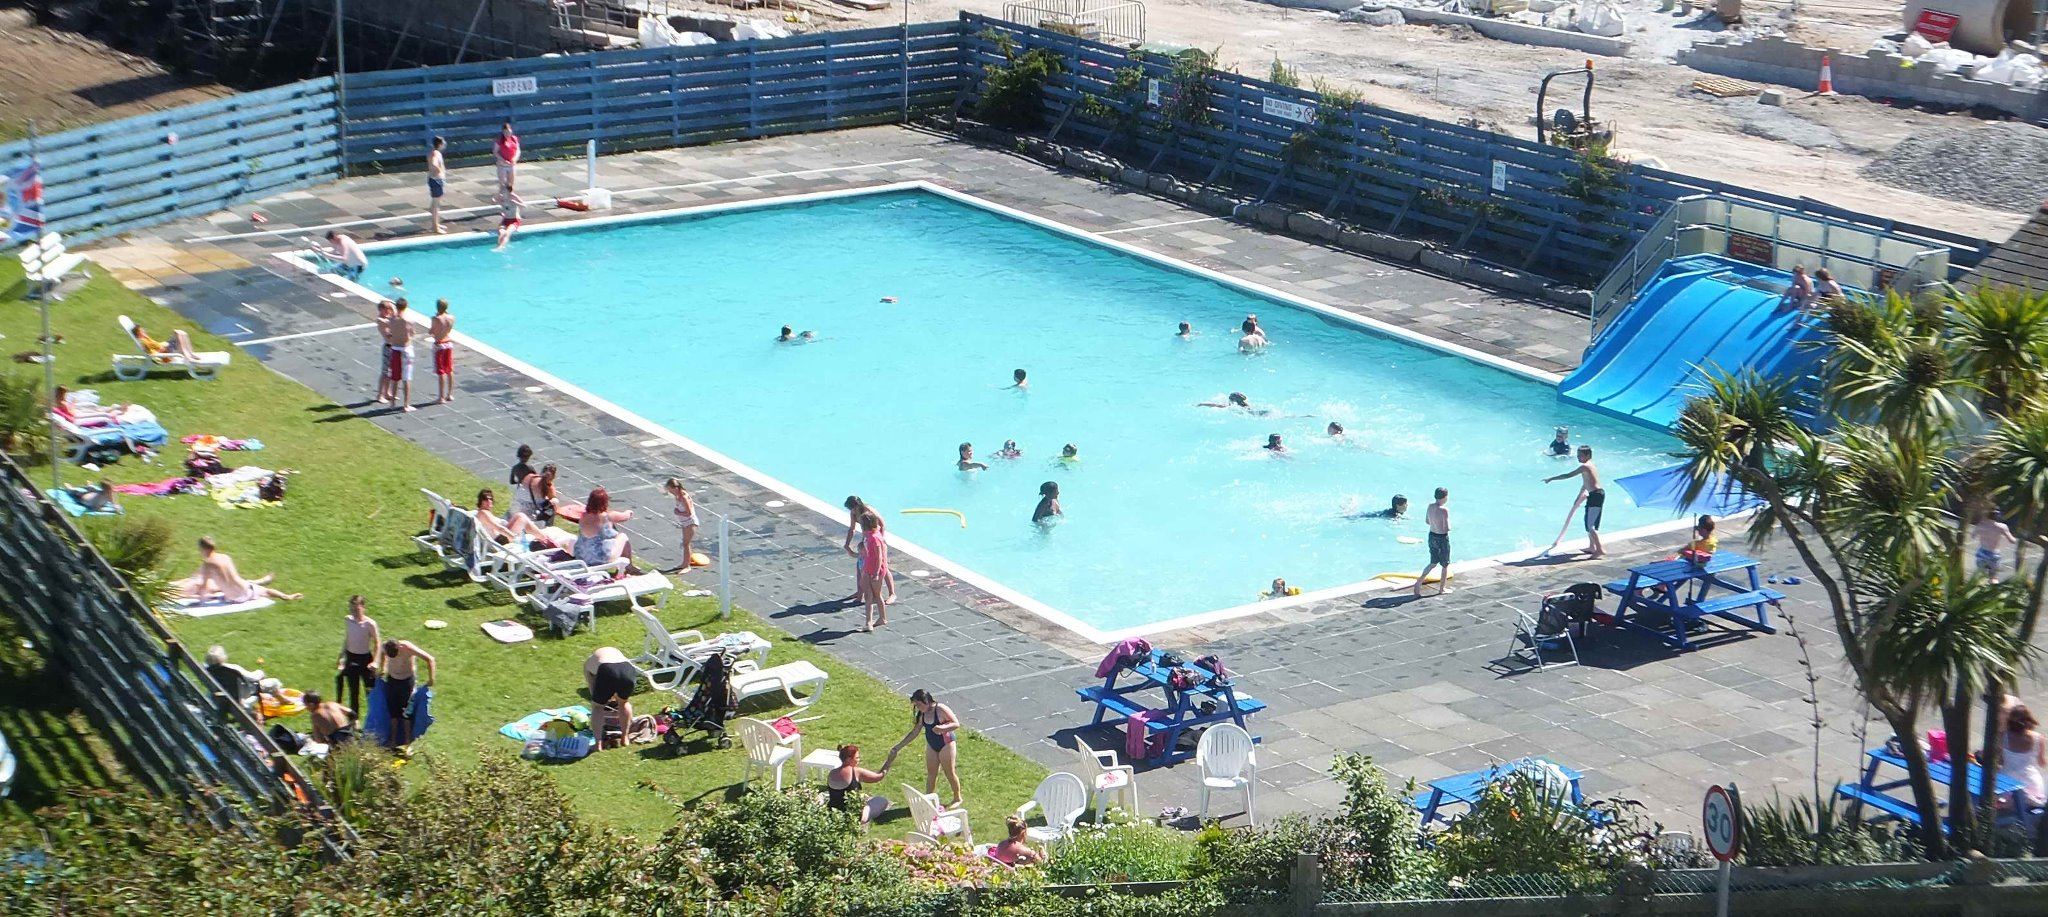 Outdoor swimming pool hayle town council - Outdoor swimming pools north west ...